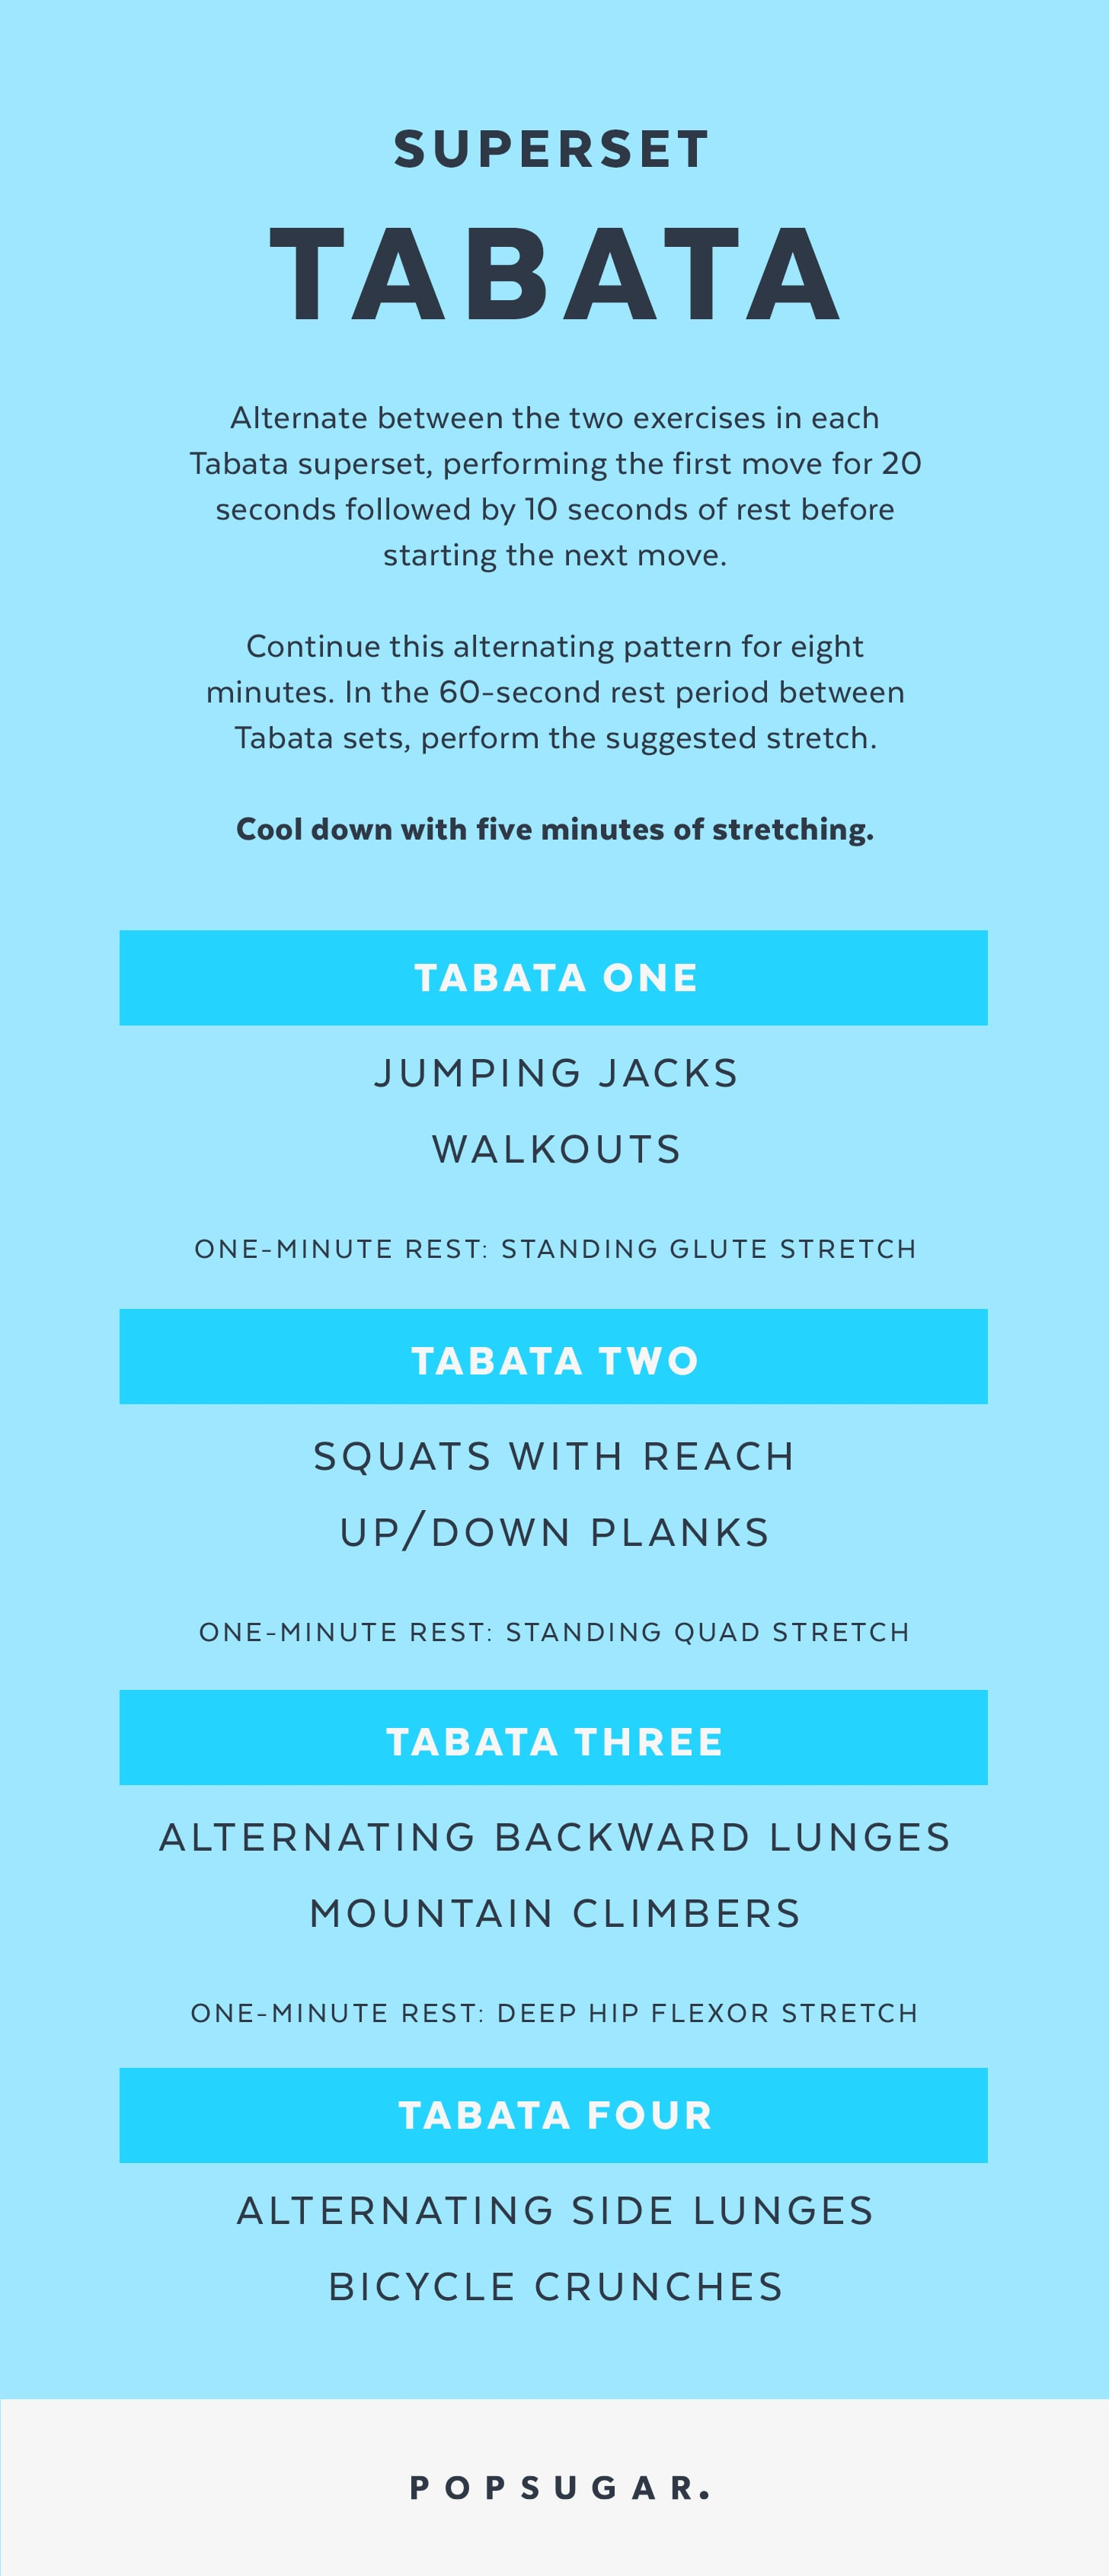 You Can Do This Printable Superset Tabata Workout Anywhere